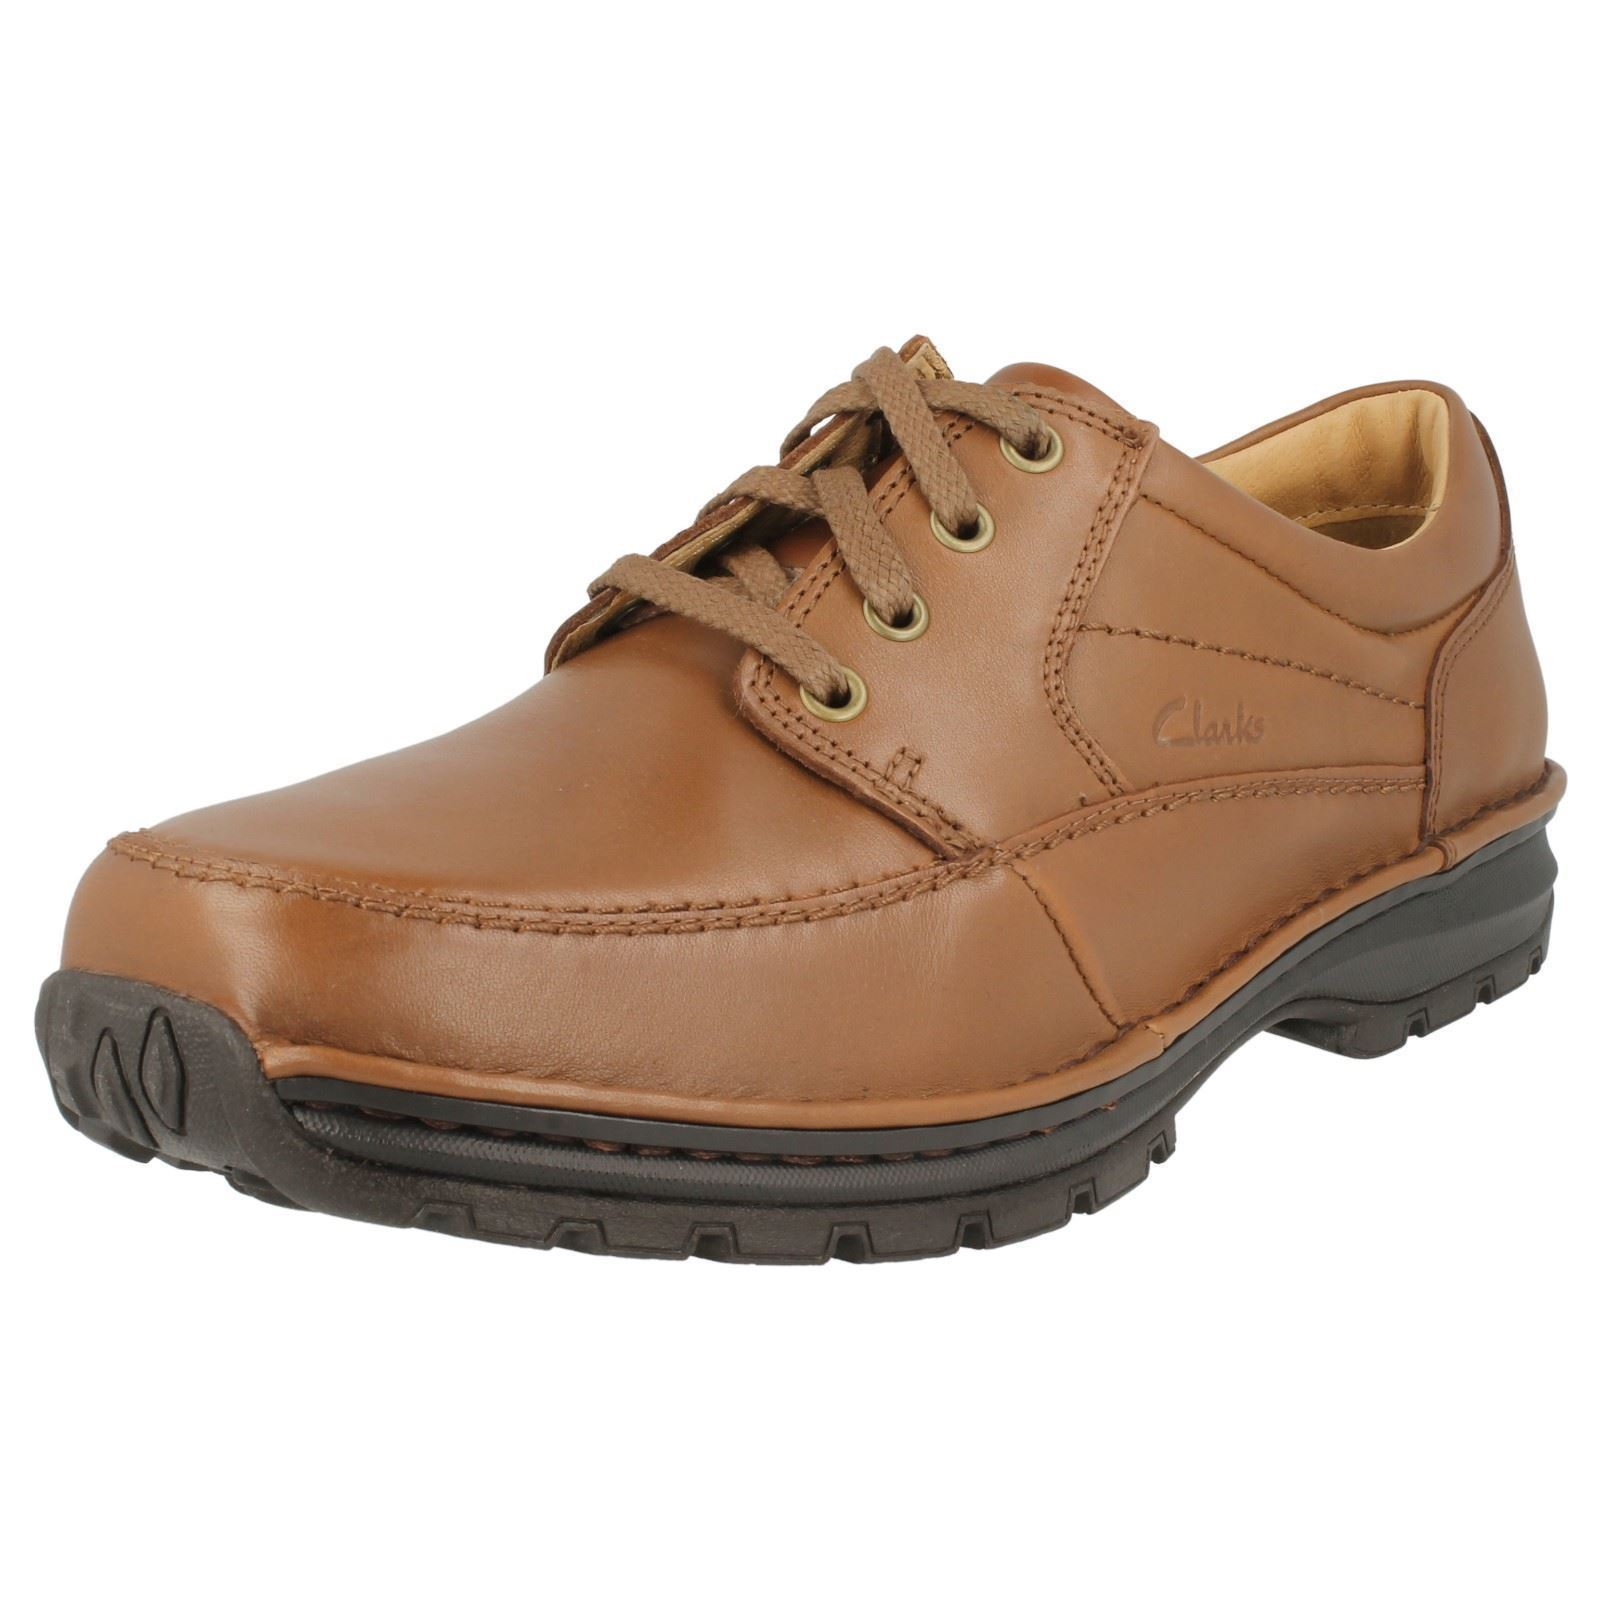 'Mens Clarks' Lace up shoes - Sidmouth Key